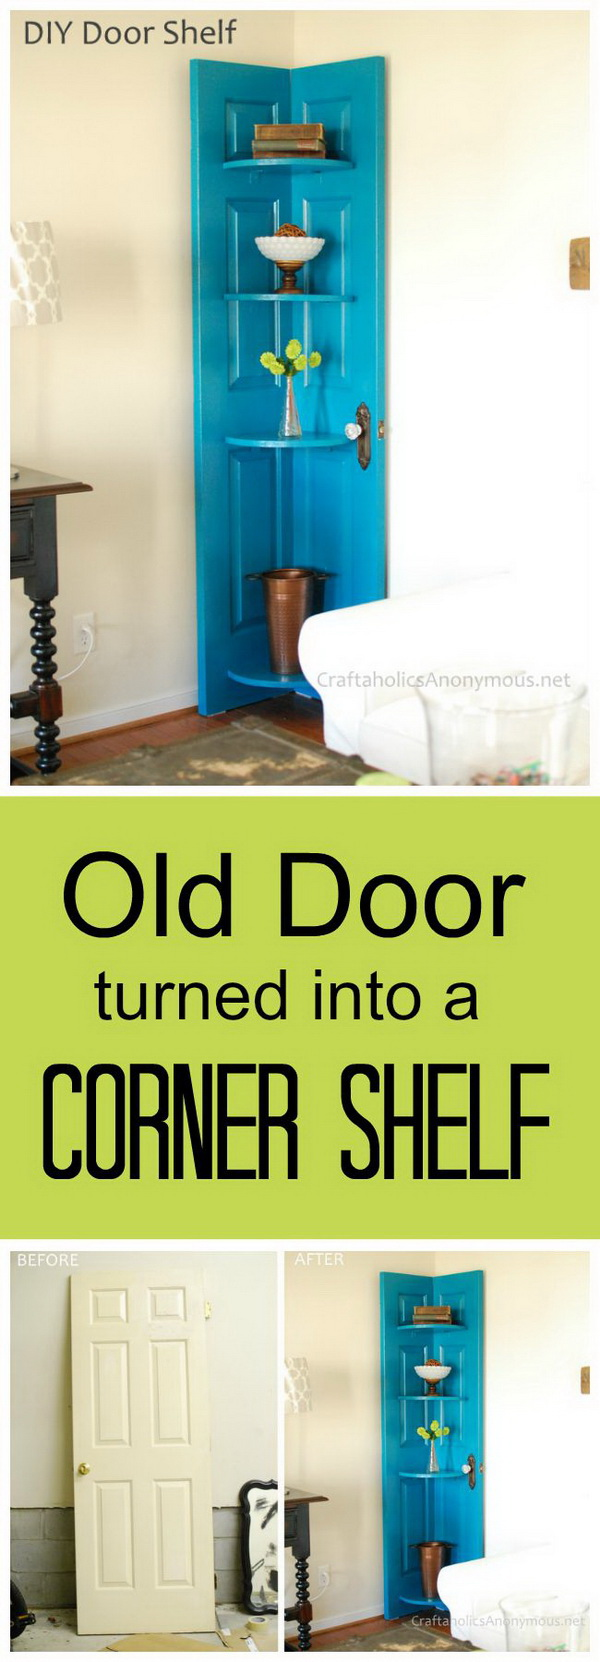 DIY Door Corner Shelf: Turn an old door that you don't want to use into this gorgeous and functional corner shelf for any room in your house with some spray paint and a bit of woodworking skills!